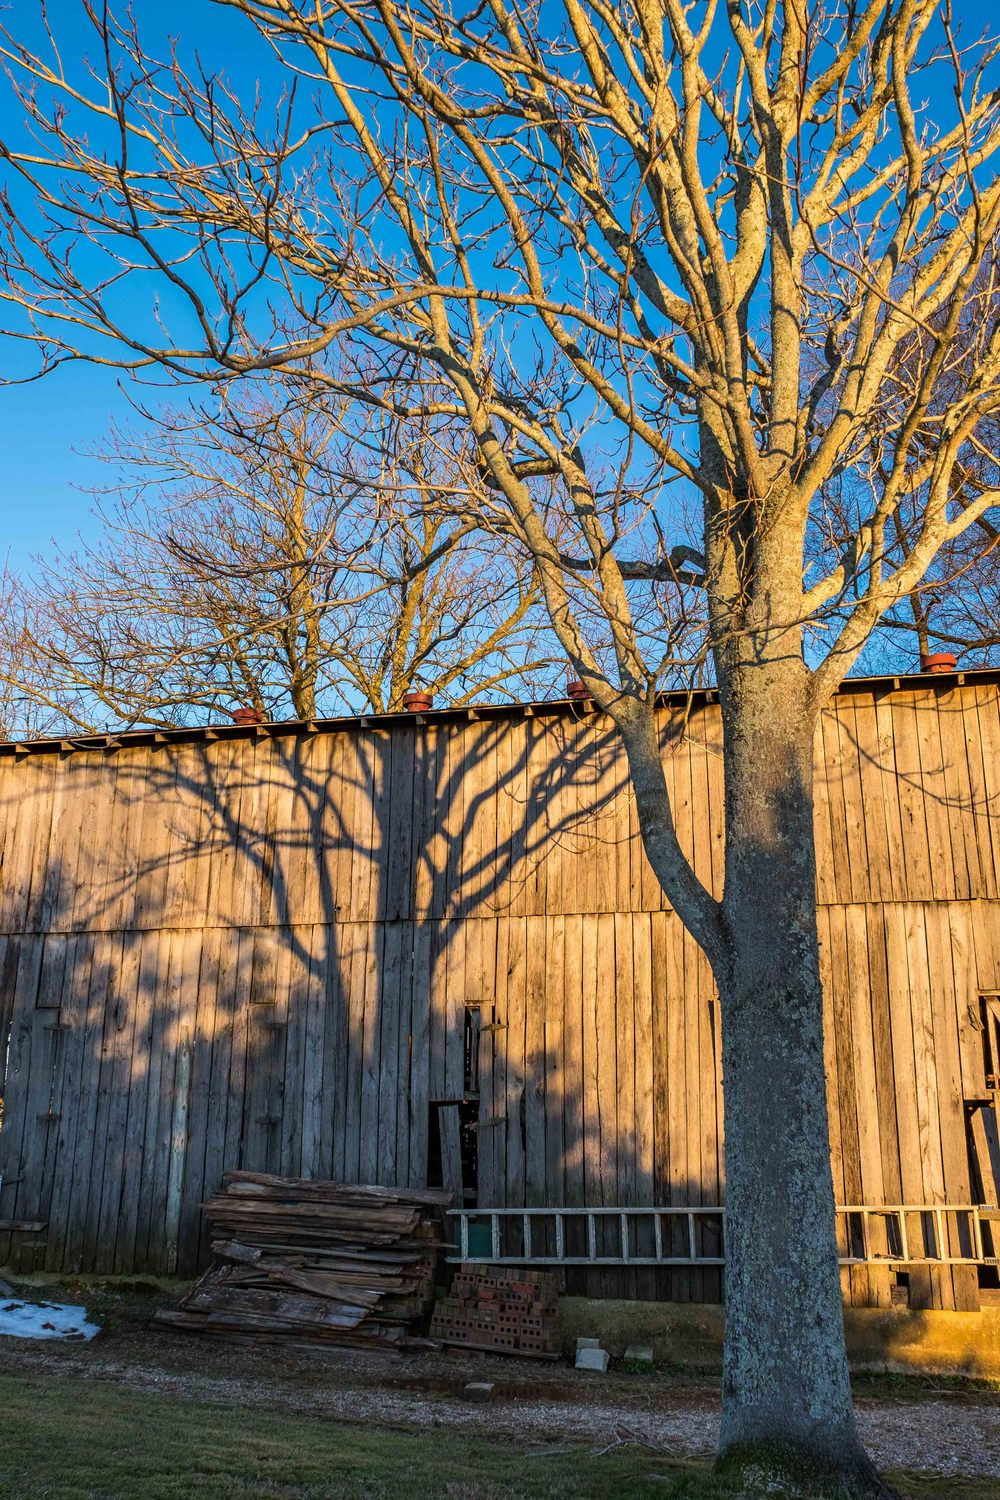 A nice sunset on a barn located in the campground. I loved how the shadow of one tree looked like the trunk of another.